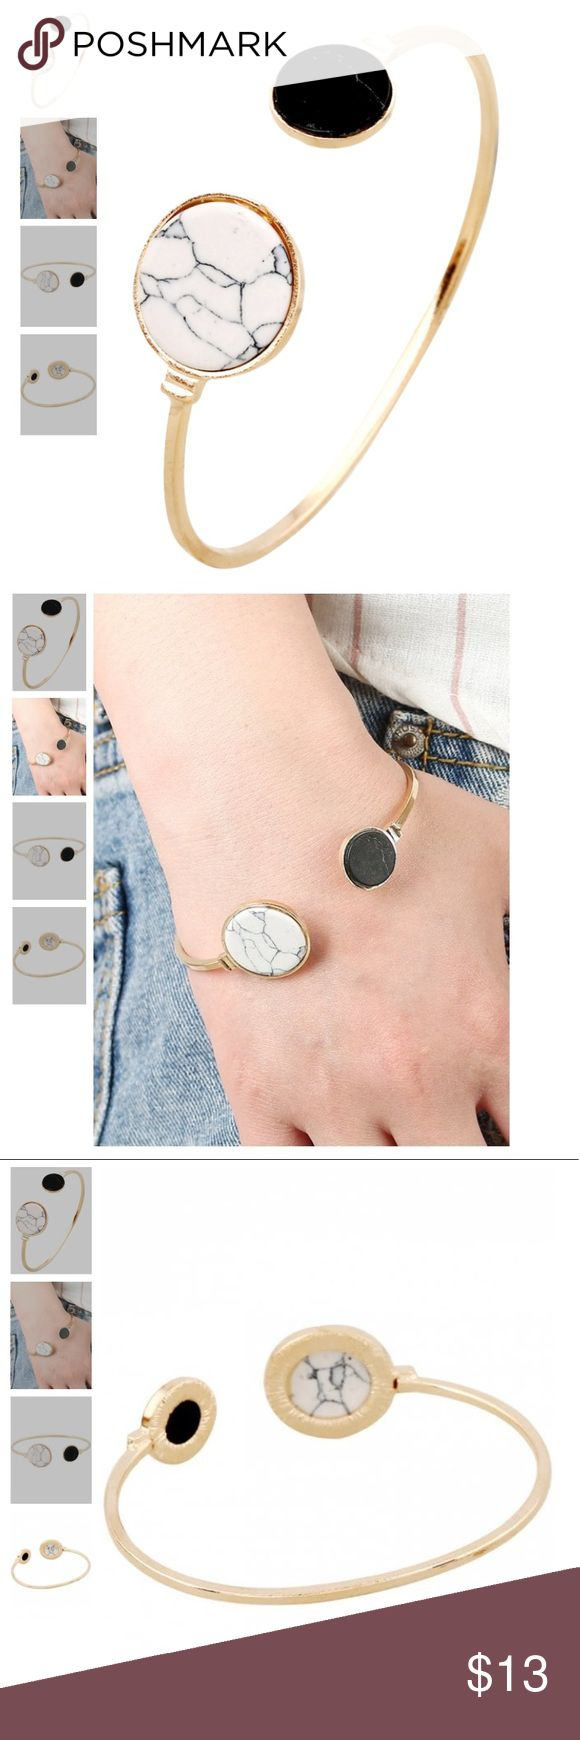 Stones bracelet round Item Type: Cuff Bracelet  Gender: For Women  Chain Type: Link Chain  Metal Type: Alloy  Style: Trendy  Shape/Pattern: Round Jewelry Bracelets